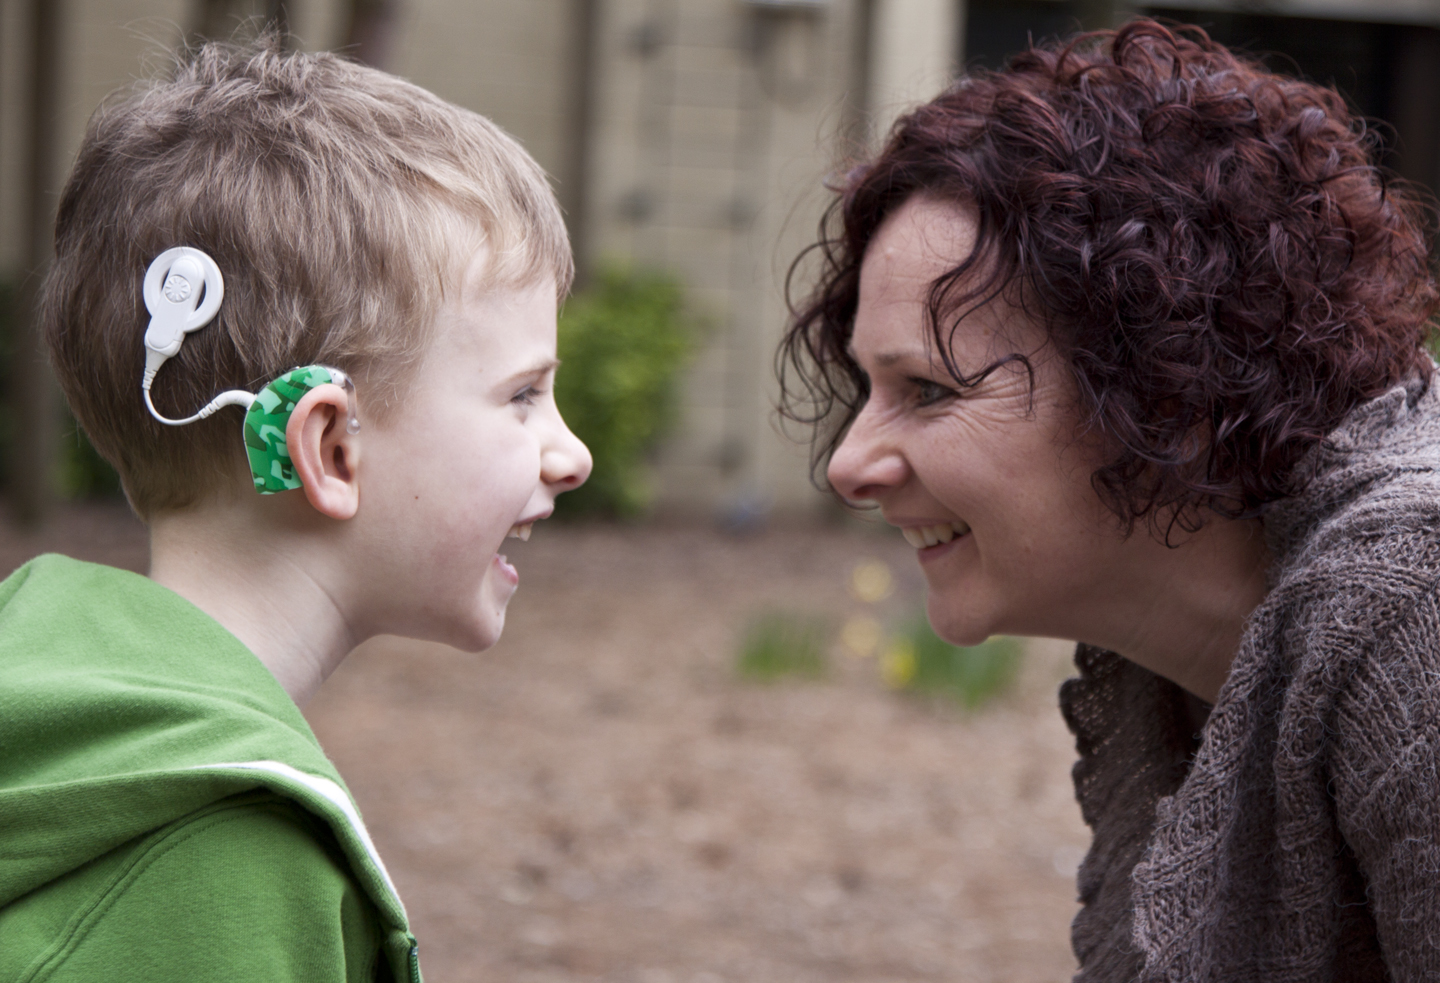 Son with hearing aid and mother